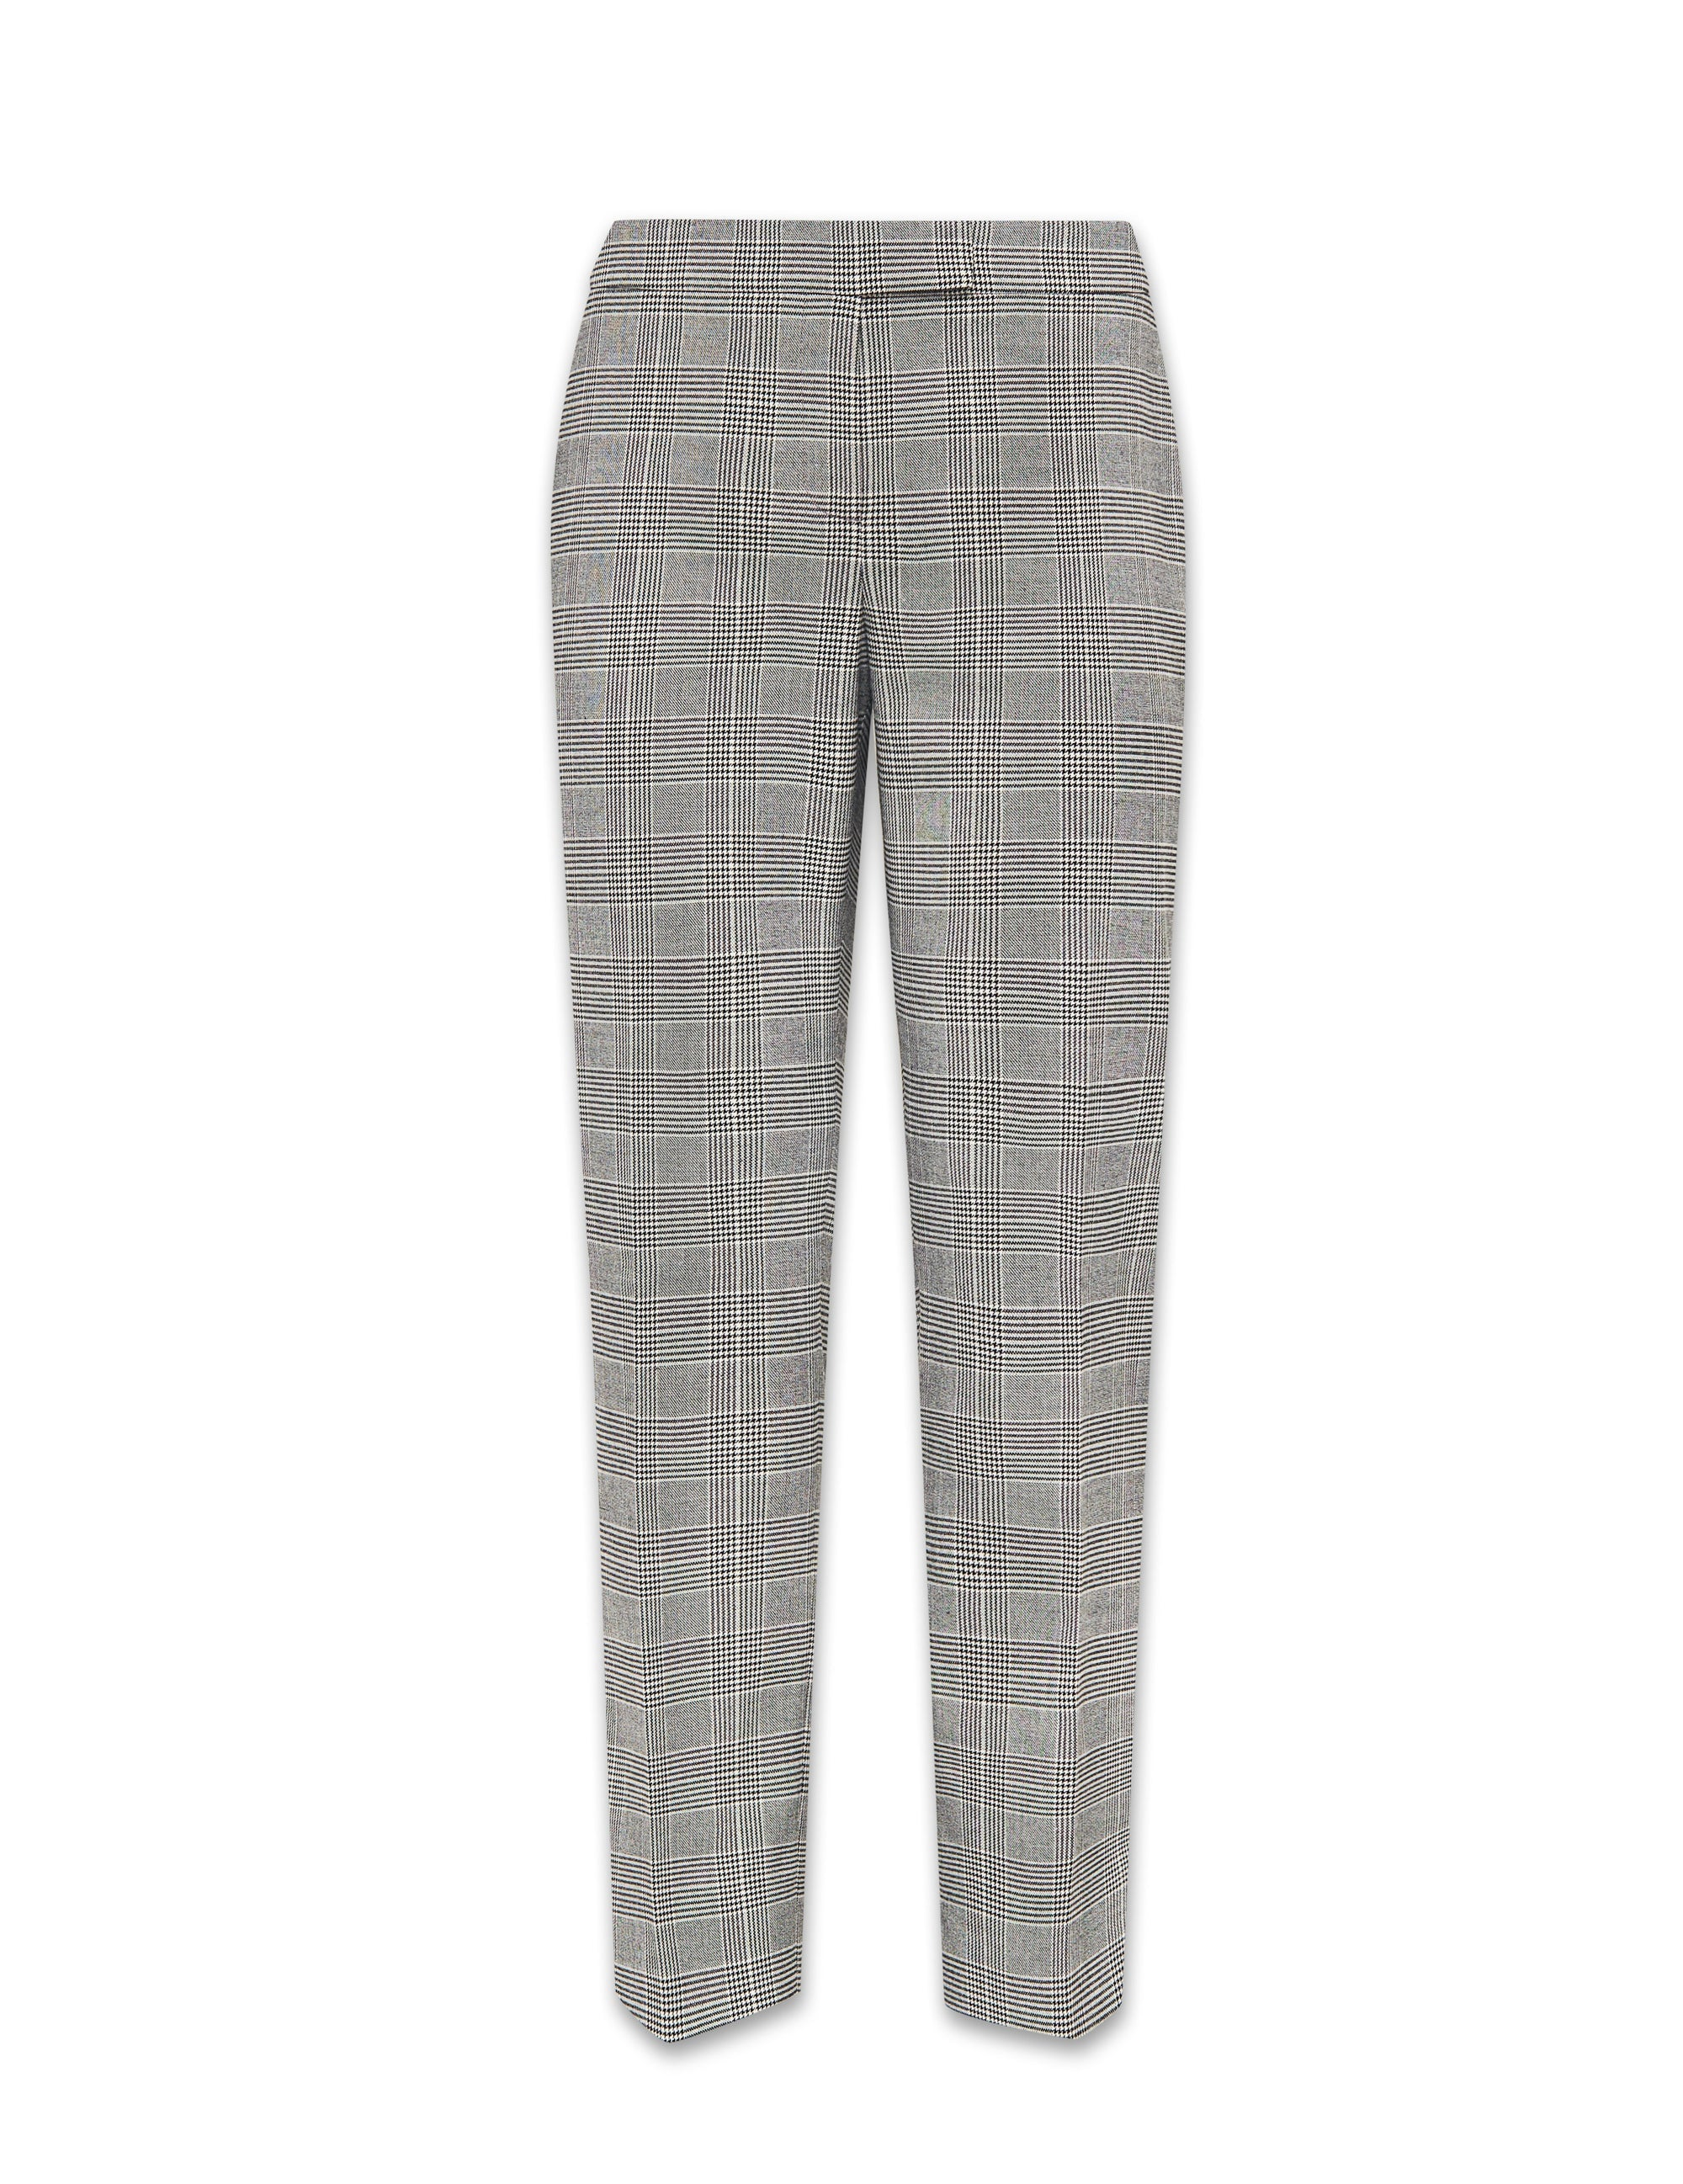 Anne Klein Plaid Bowie Pant in Anne Black and Anne White